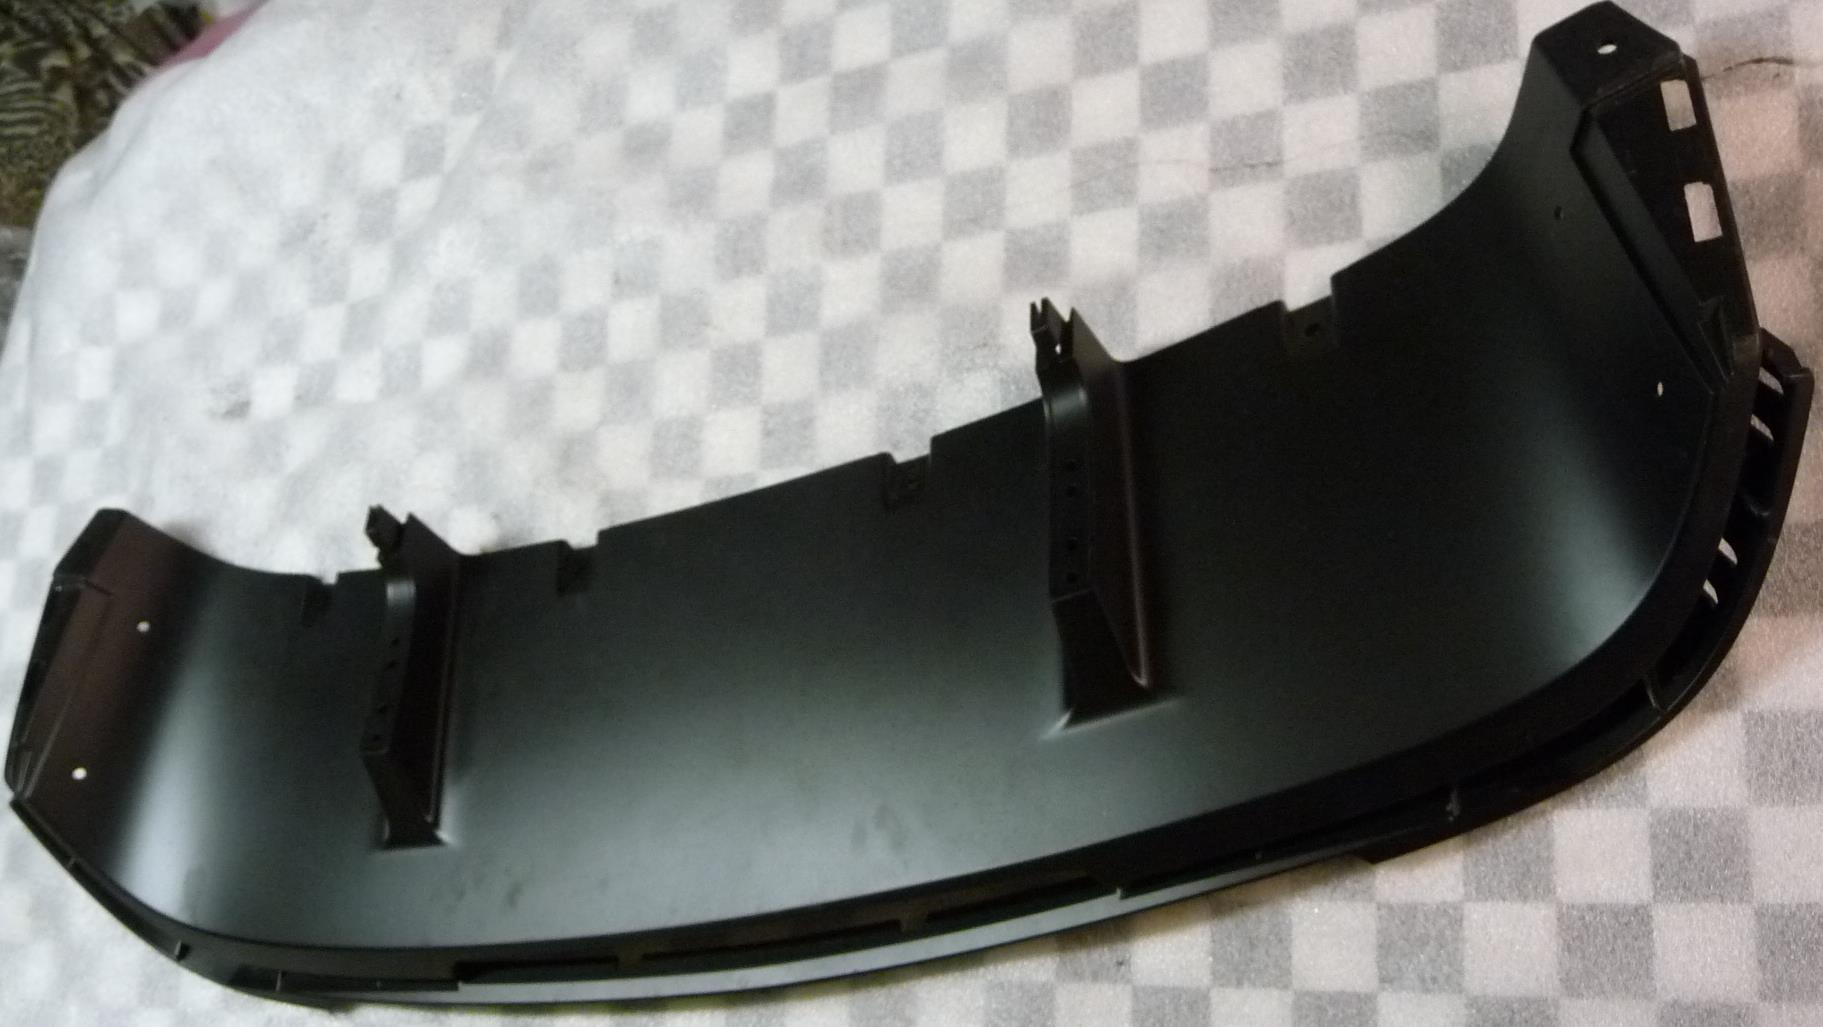 2013 2014 2015 2016 Bentley Sedan Flying Spur rear Bumper Diffuser Lower Spoiler 4W0807110